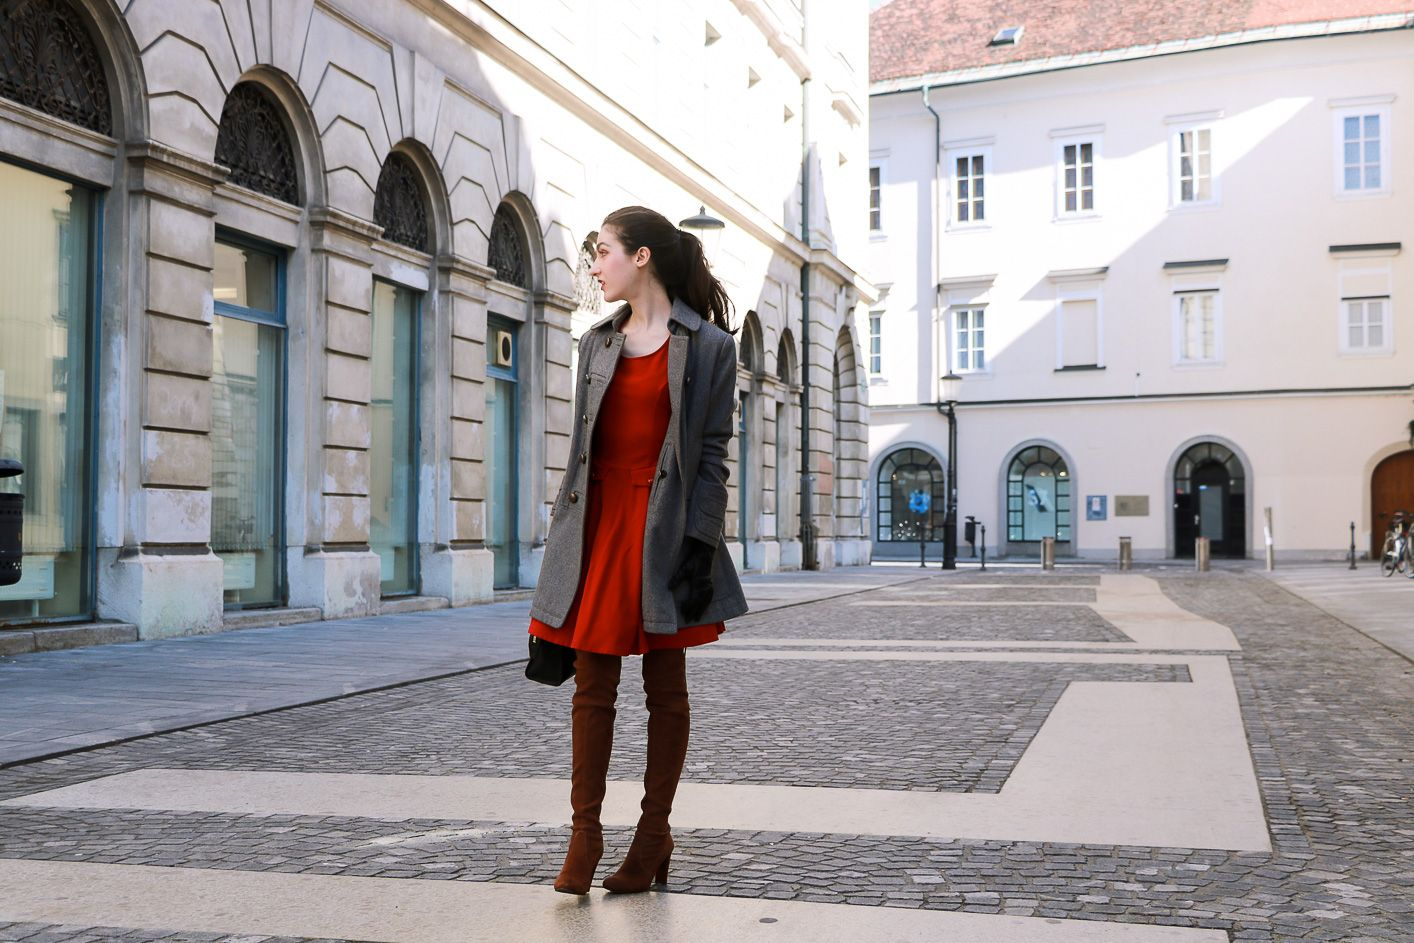 Fashion blogger Veronika Lipar of Brunette From Wall Street sharing her red dress outfit